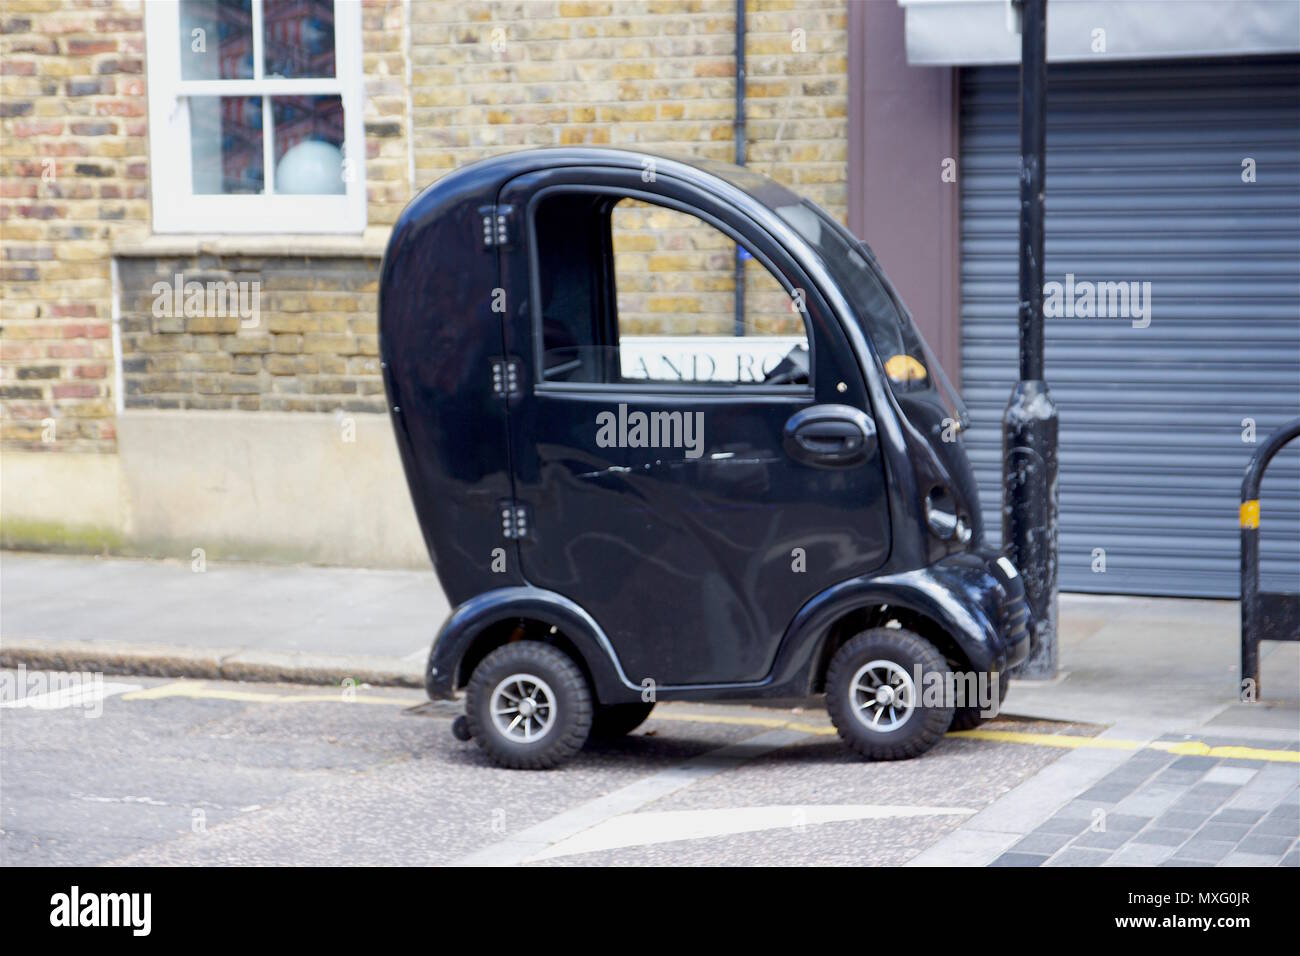 A parked, black one passenger car in Bow, East London - Stock Image